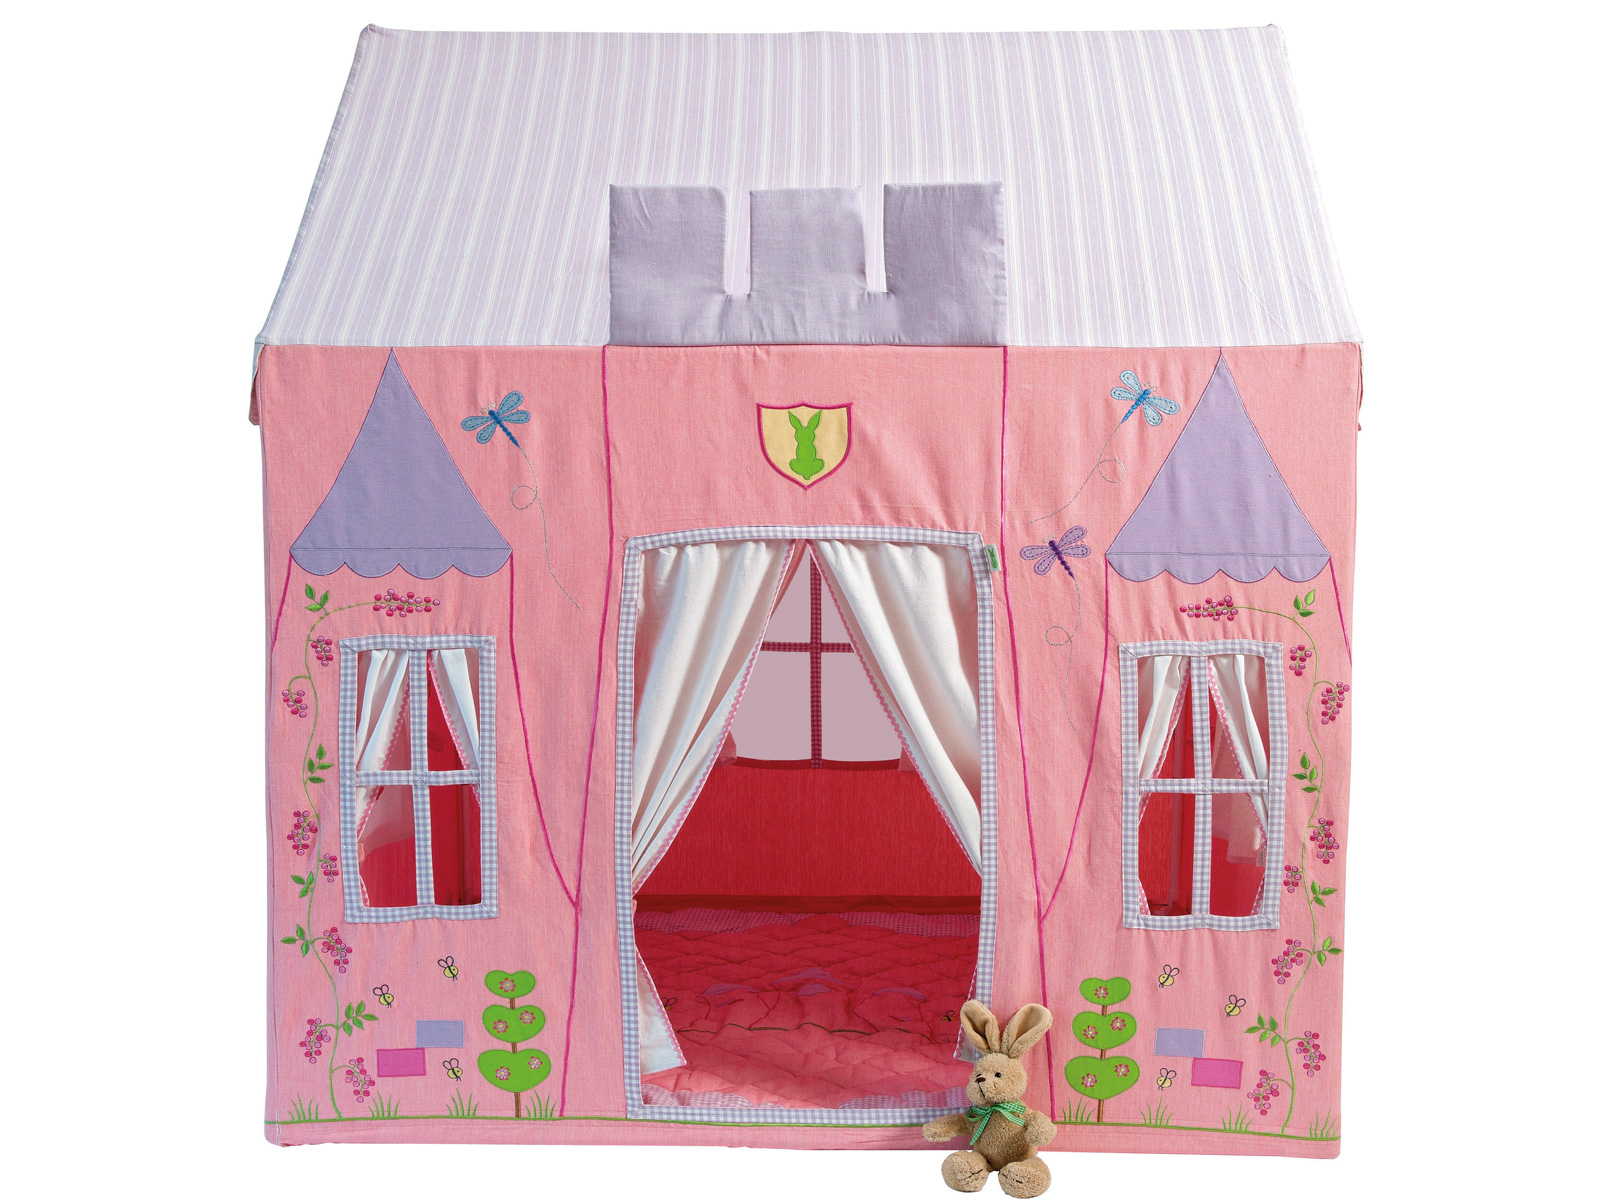 Win Green Handmade Cotton Princess Castle Playhouse - Playhouse of Dreams  - 1